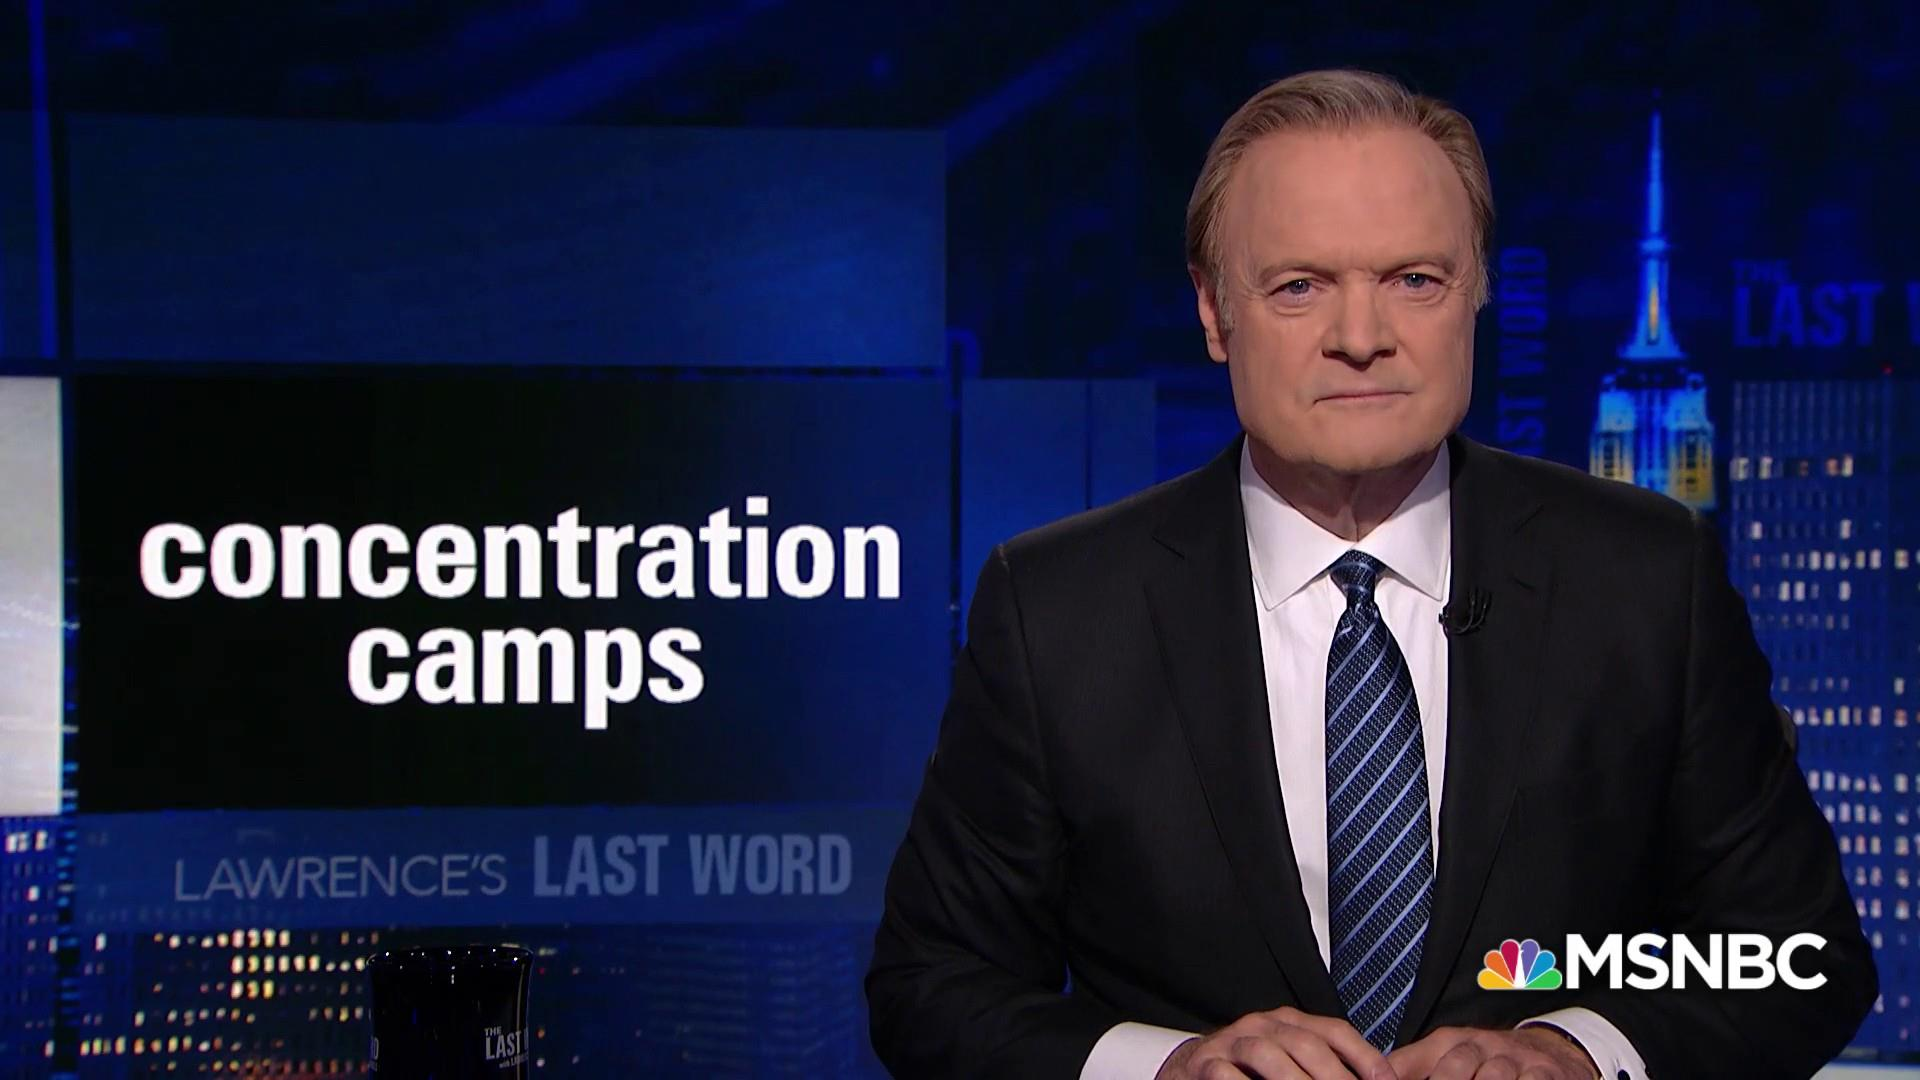 Lawrence's Last Word: America's history of concentration camps